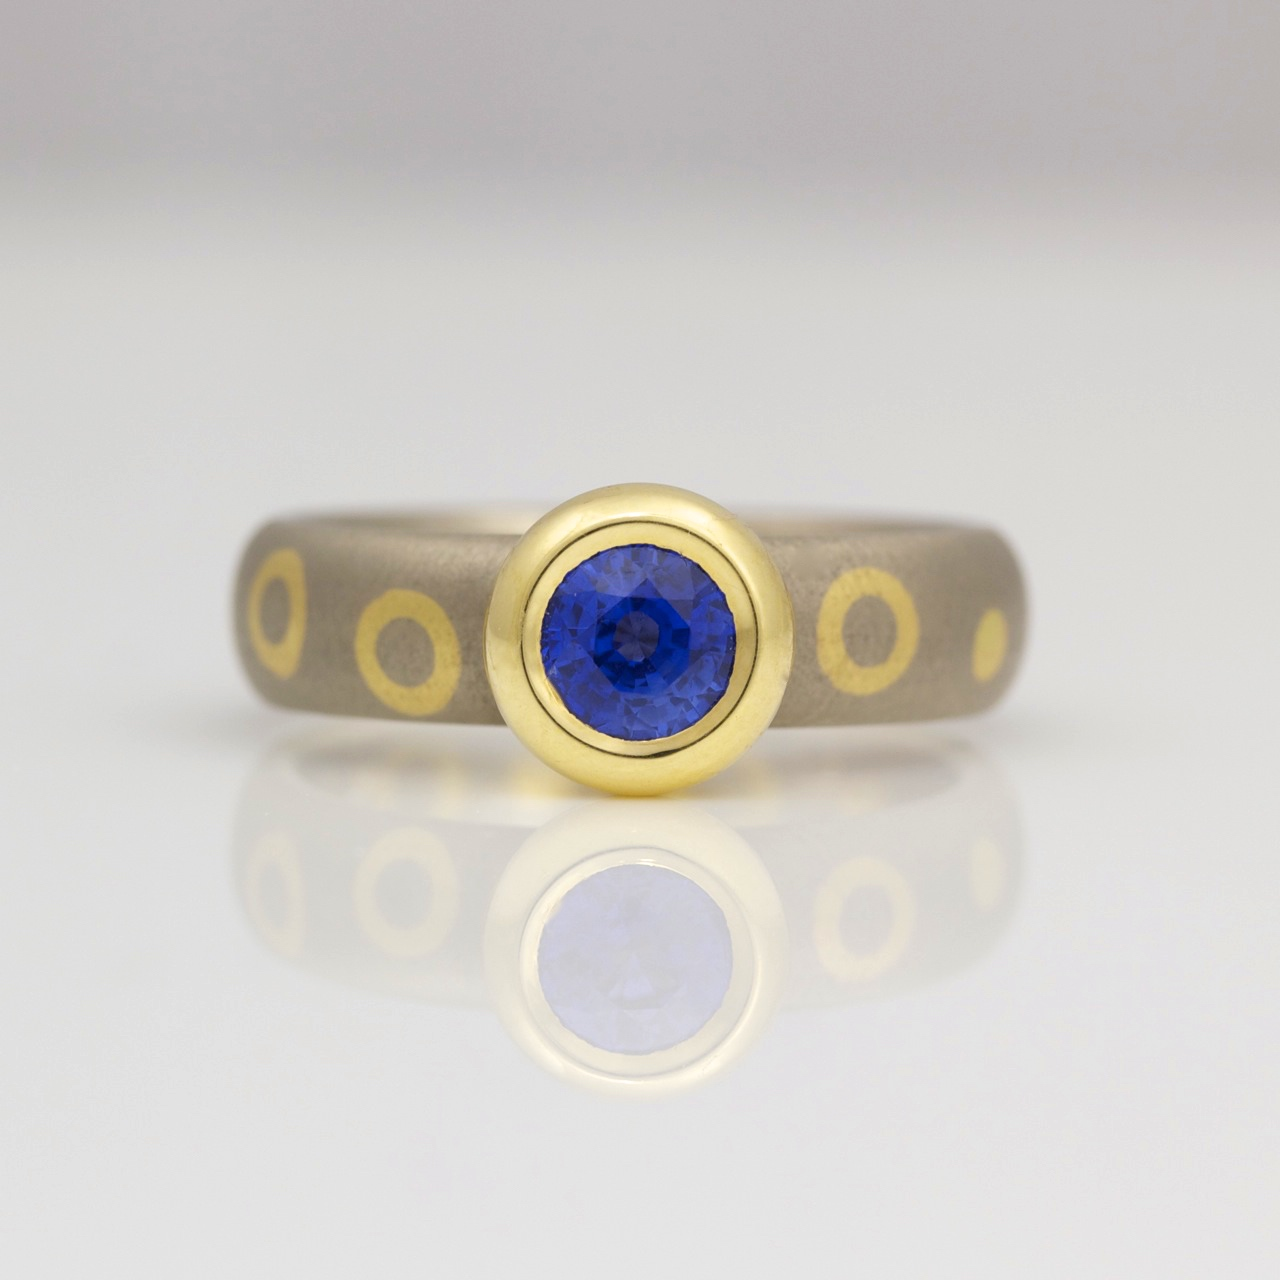 ruth gold engagement product the subsampling upscale crop false scale ring blue editor zoom jewellery tomlinson sapphire shop